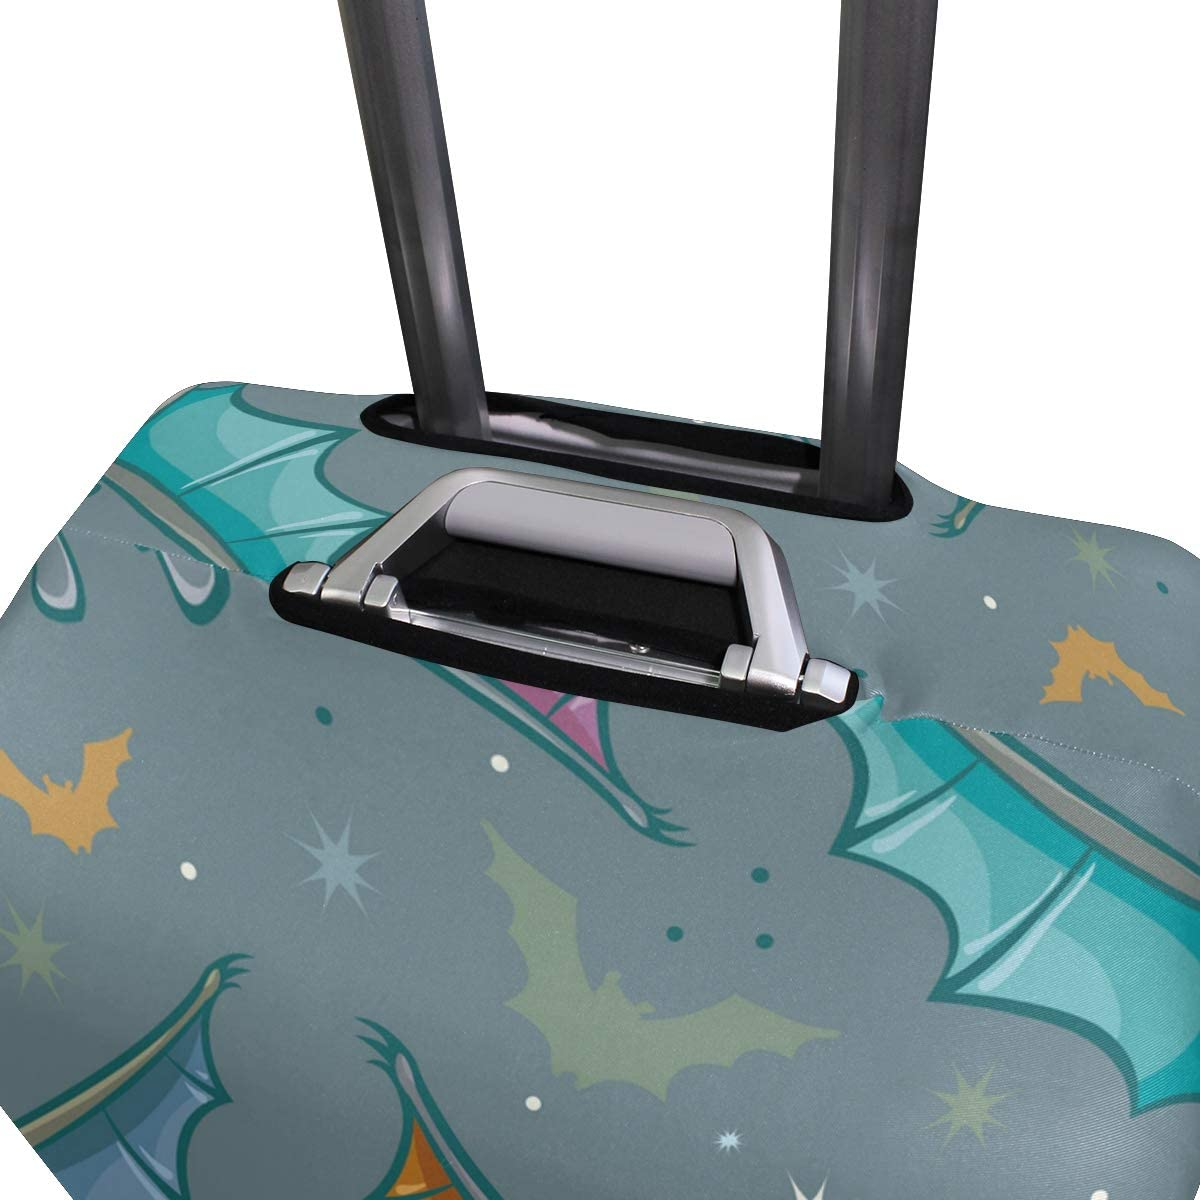 OREZI Luggage Protector,Cartoon Bats Elastic Travel Luggage Suitcase Cover,Washable and Durable Anti-Scratch Case Protective Cover for 18-32 Inches